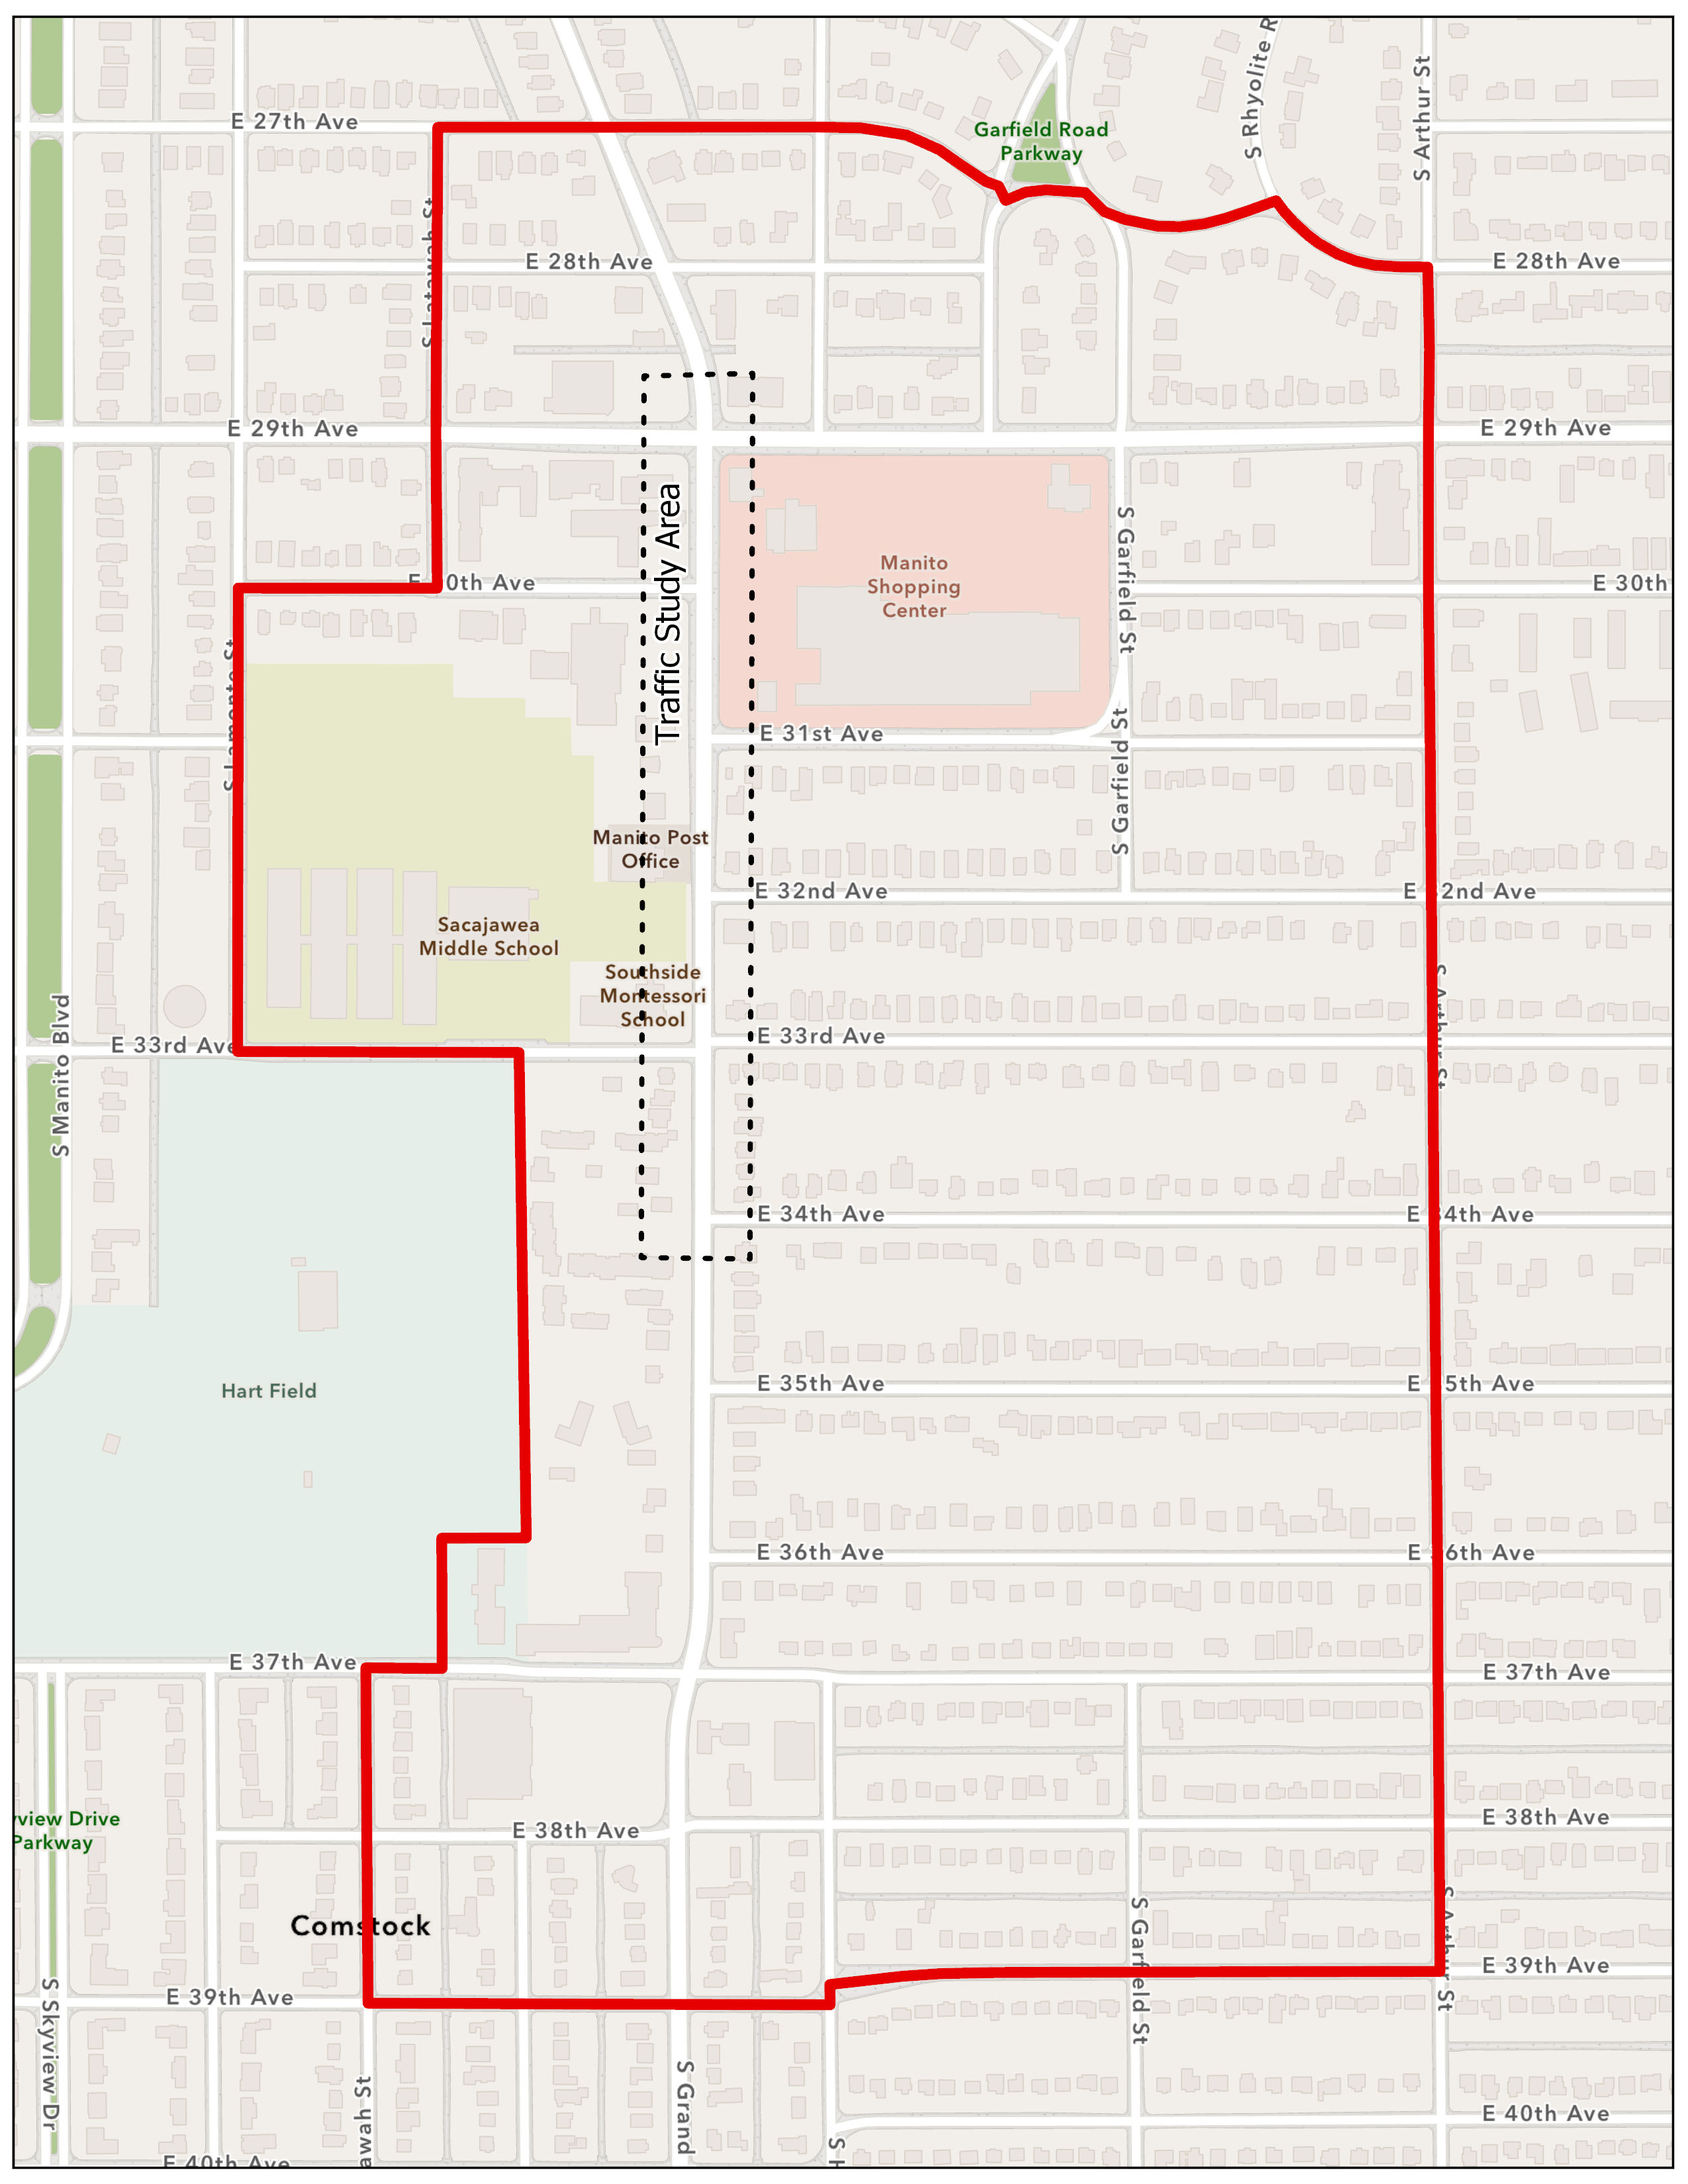 """Please refer to the Grand Boulevard Planning Area map as needed to answer questions. The <span style=""""text-decoration: underline;"""">traffic study</span>area focuses on Grand, from 29th to 34th Avenue, marked by the dashed line. The entire <span style=""""text-decoration: underline;"""">planning study area</span> for land use and zoning studies is 27th to 39th, Latawah to Arthur Street, outlined in red.<br><br><em>Please refer to the Grand Boulevard Planning Area 27th to 39th, Latawah to Arthur Street, outlined in red for questions 1 – 5.</em>"""